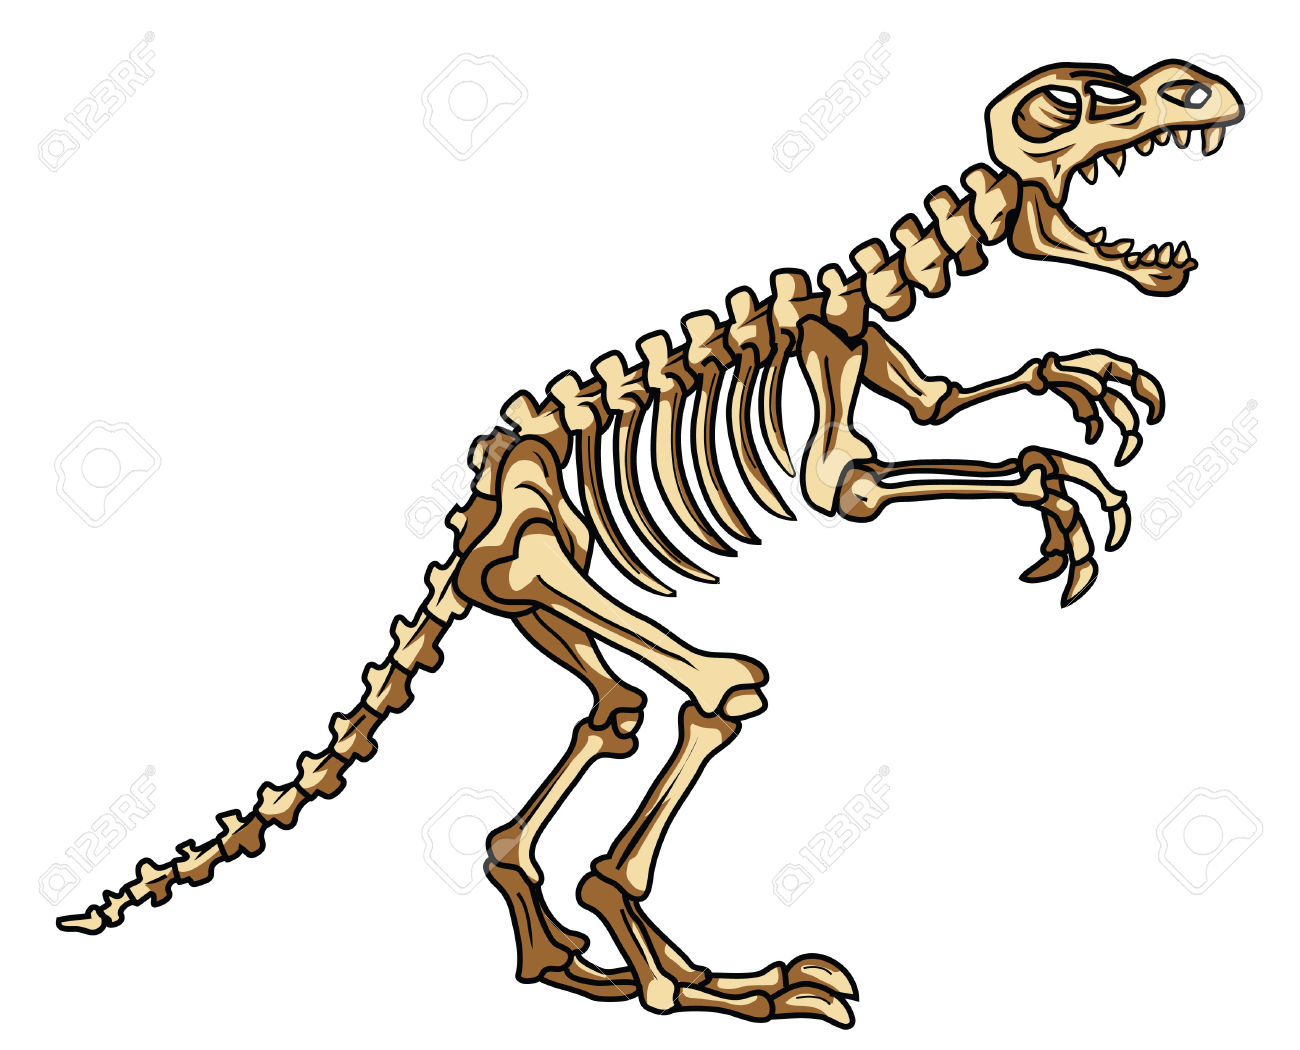 picture royalty free download Dinosaur station . Fossil clipart dino fossil